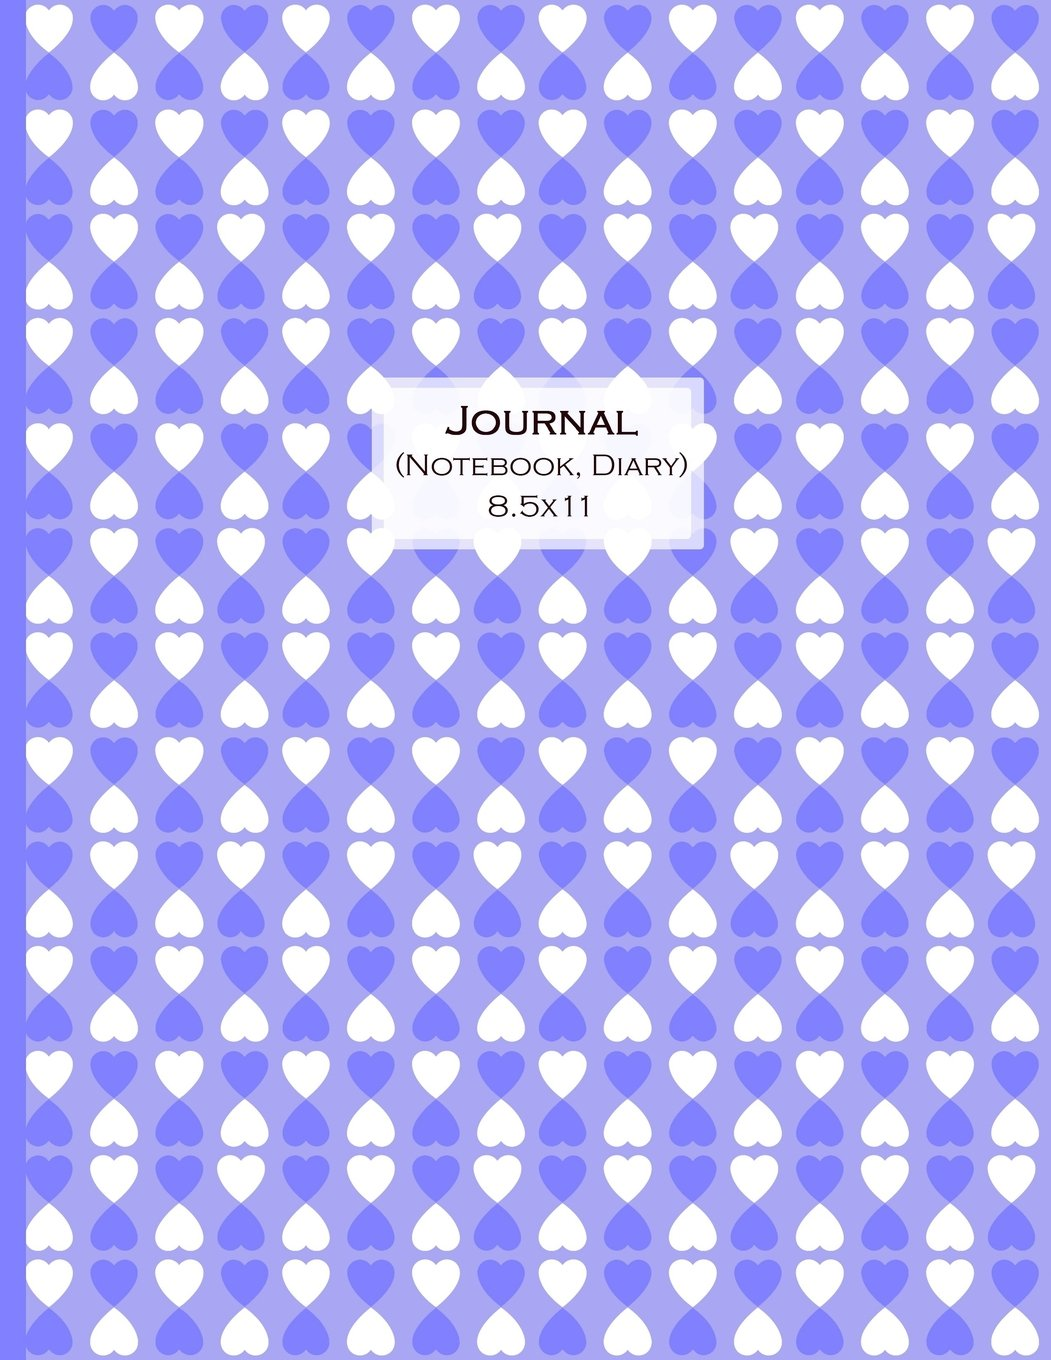 Download Journal (Notebook, Diary) 8.5x11: Blue Thick Cardstock Matte Cover, Journal/Notebook with 100 Inspirational Quotes Inside, Inspirational Thoughts for ... XL 8.5x11 (Inspirational Journals for Women) ebook